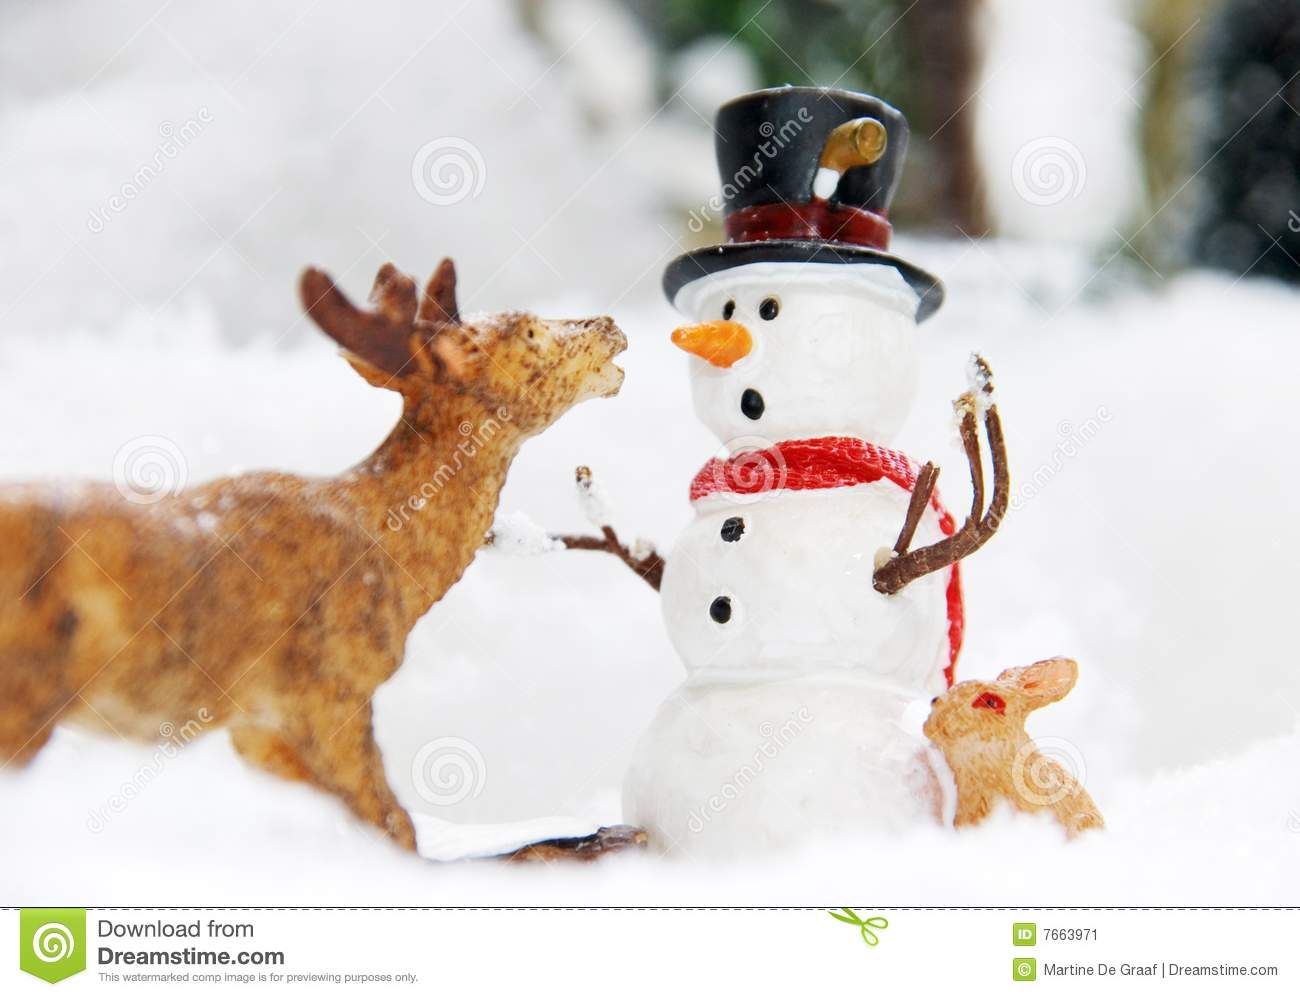 ... of a poly stone snowman and a deer eating the snowmans carrot nose